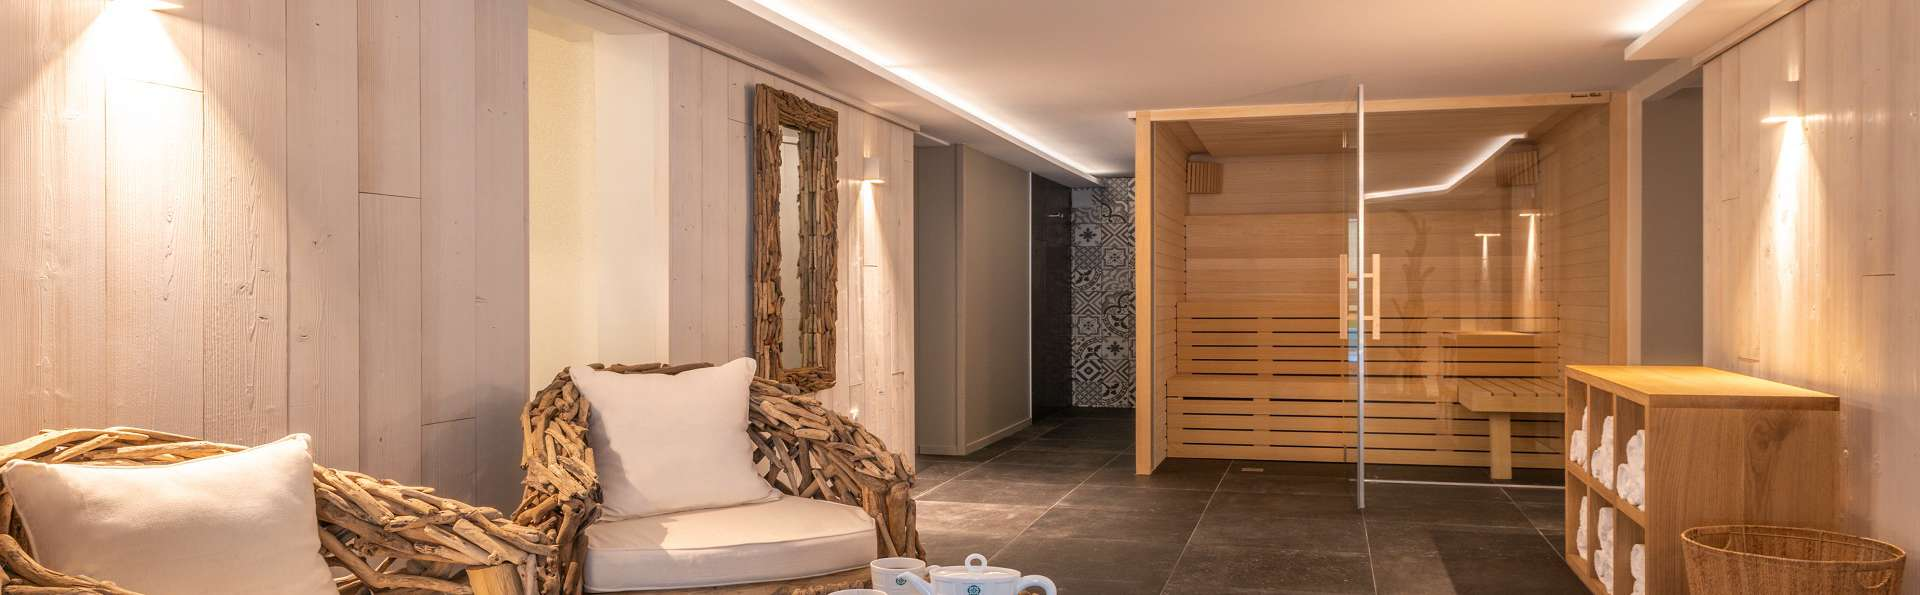 The Originals Boutique, La Villa Ouest & Spa, Royan Plage - The-Originals-1718-FR-saint-palais-sur-mer-sauna-7279.jpg